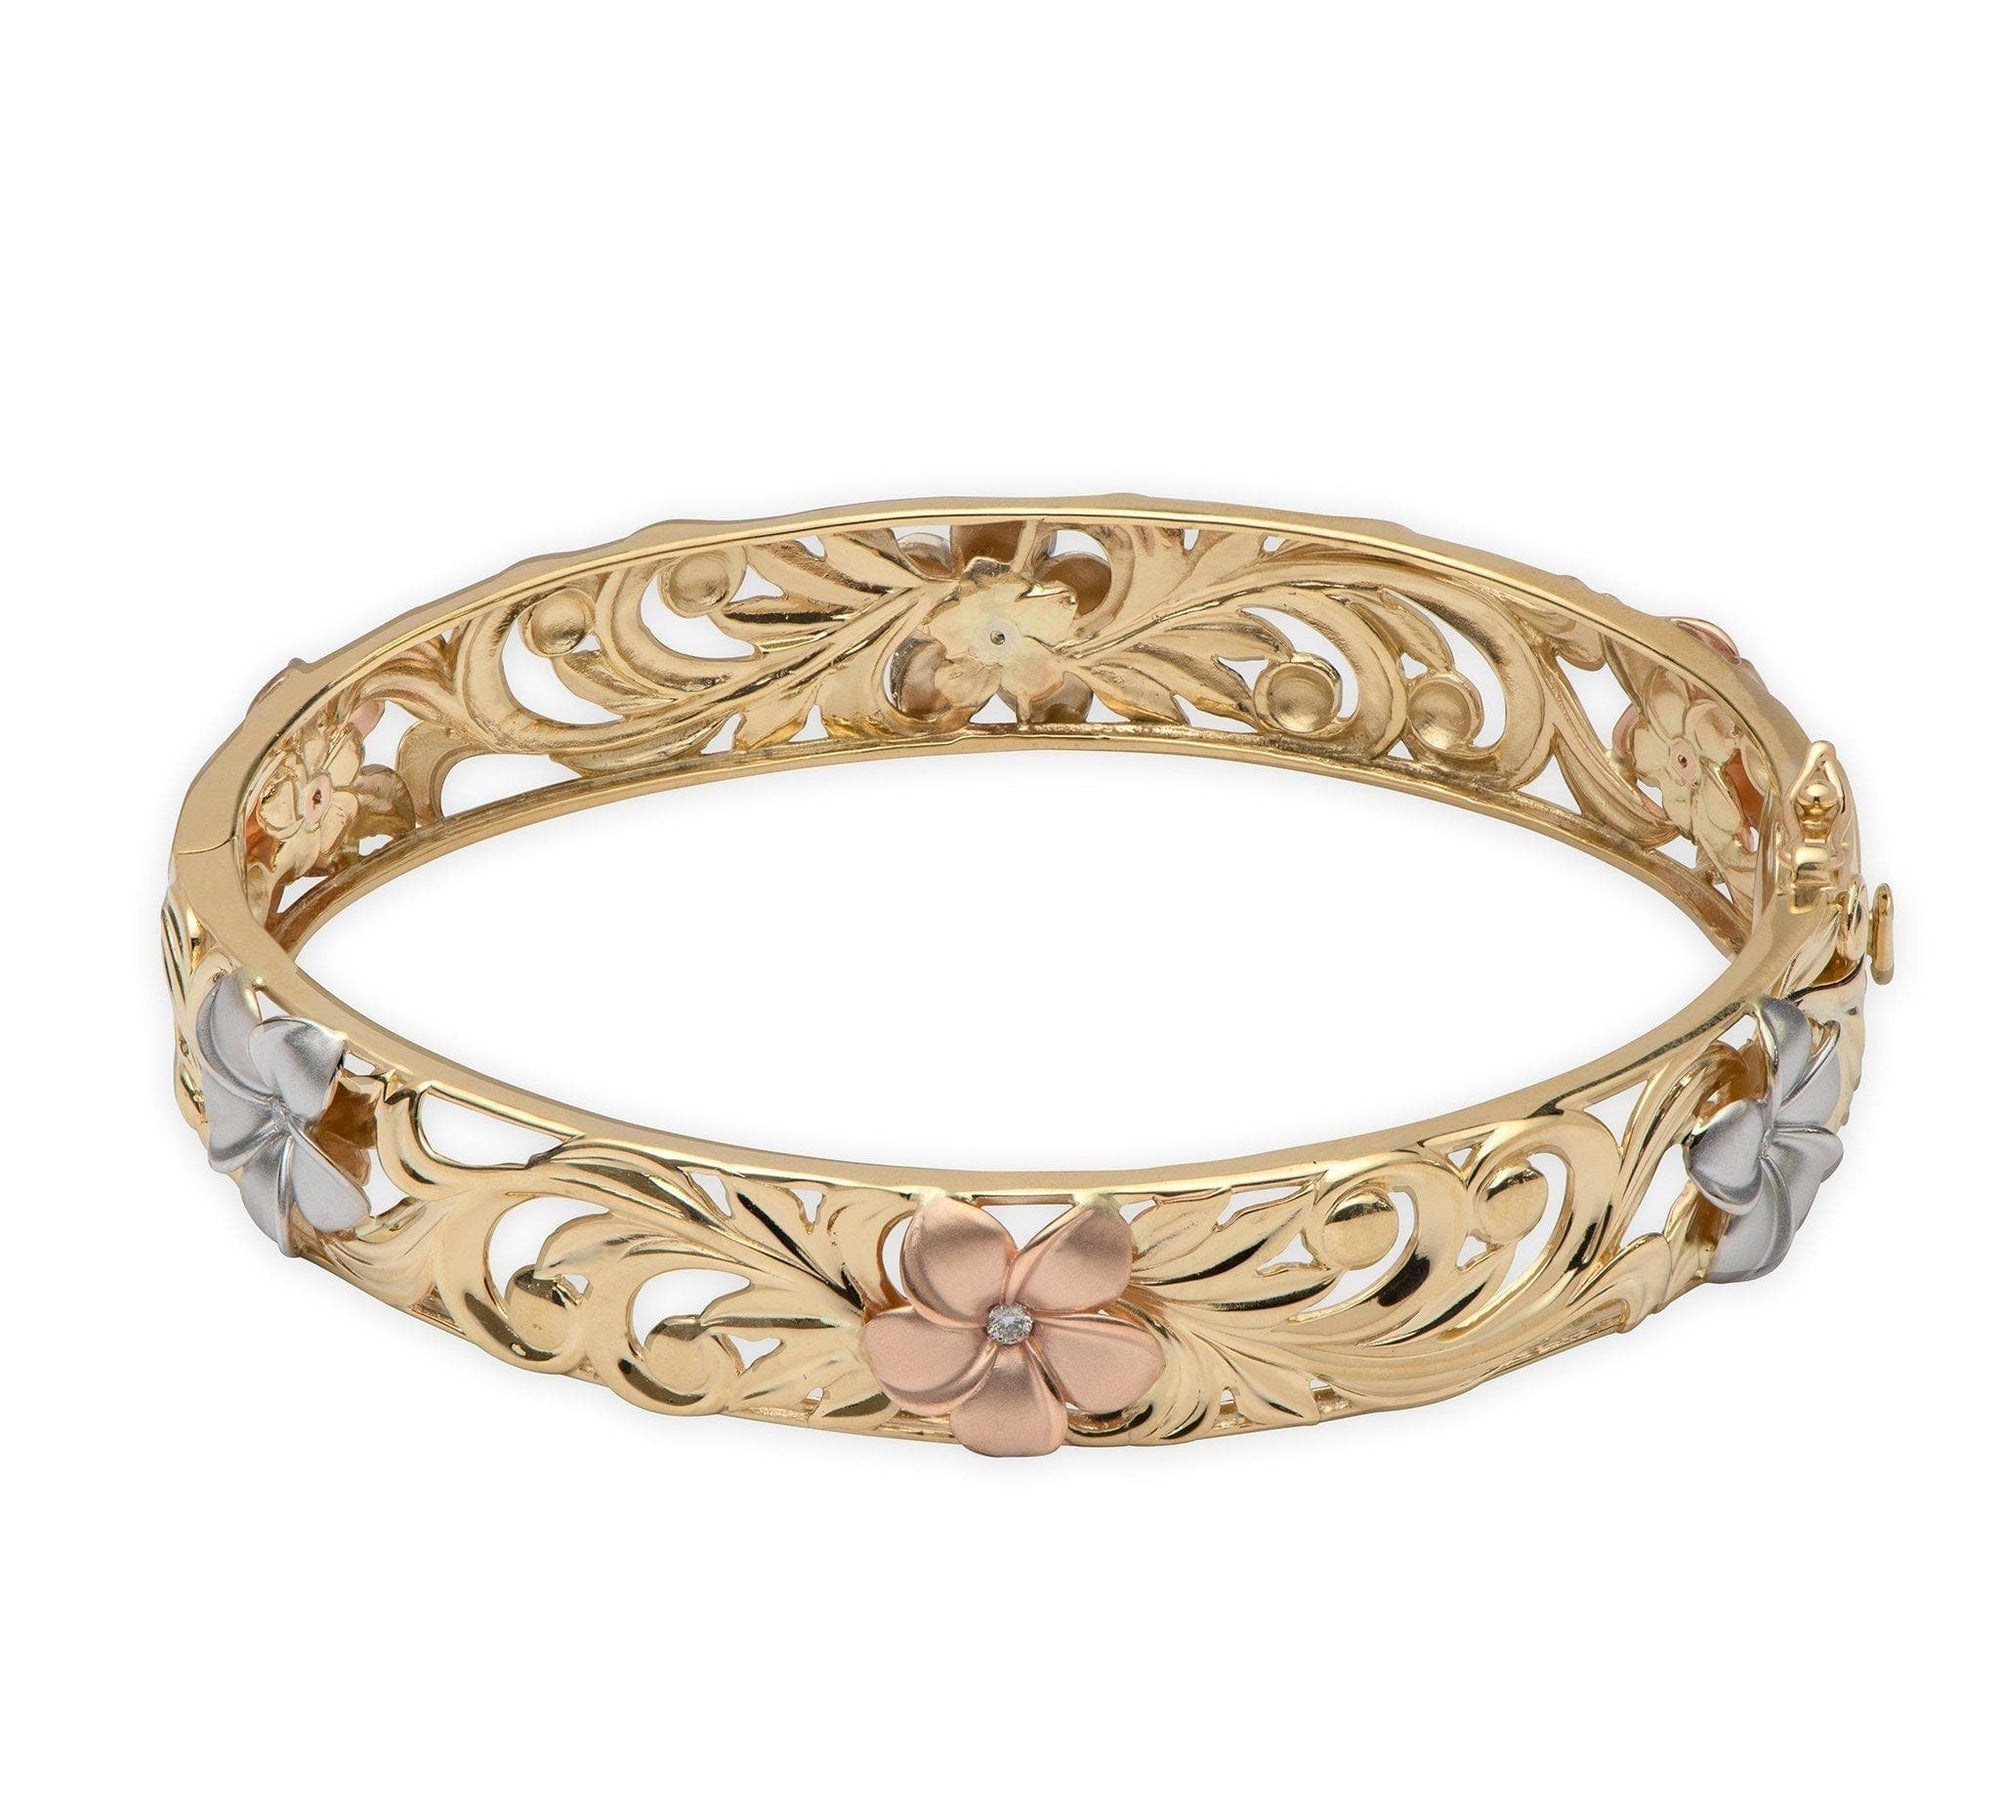 Hawaiian Heirloom Plumeria Scroll Bracelet with Diamonds in 14K Yellow Gold - Maui Divers Jewelry